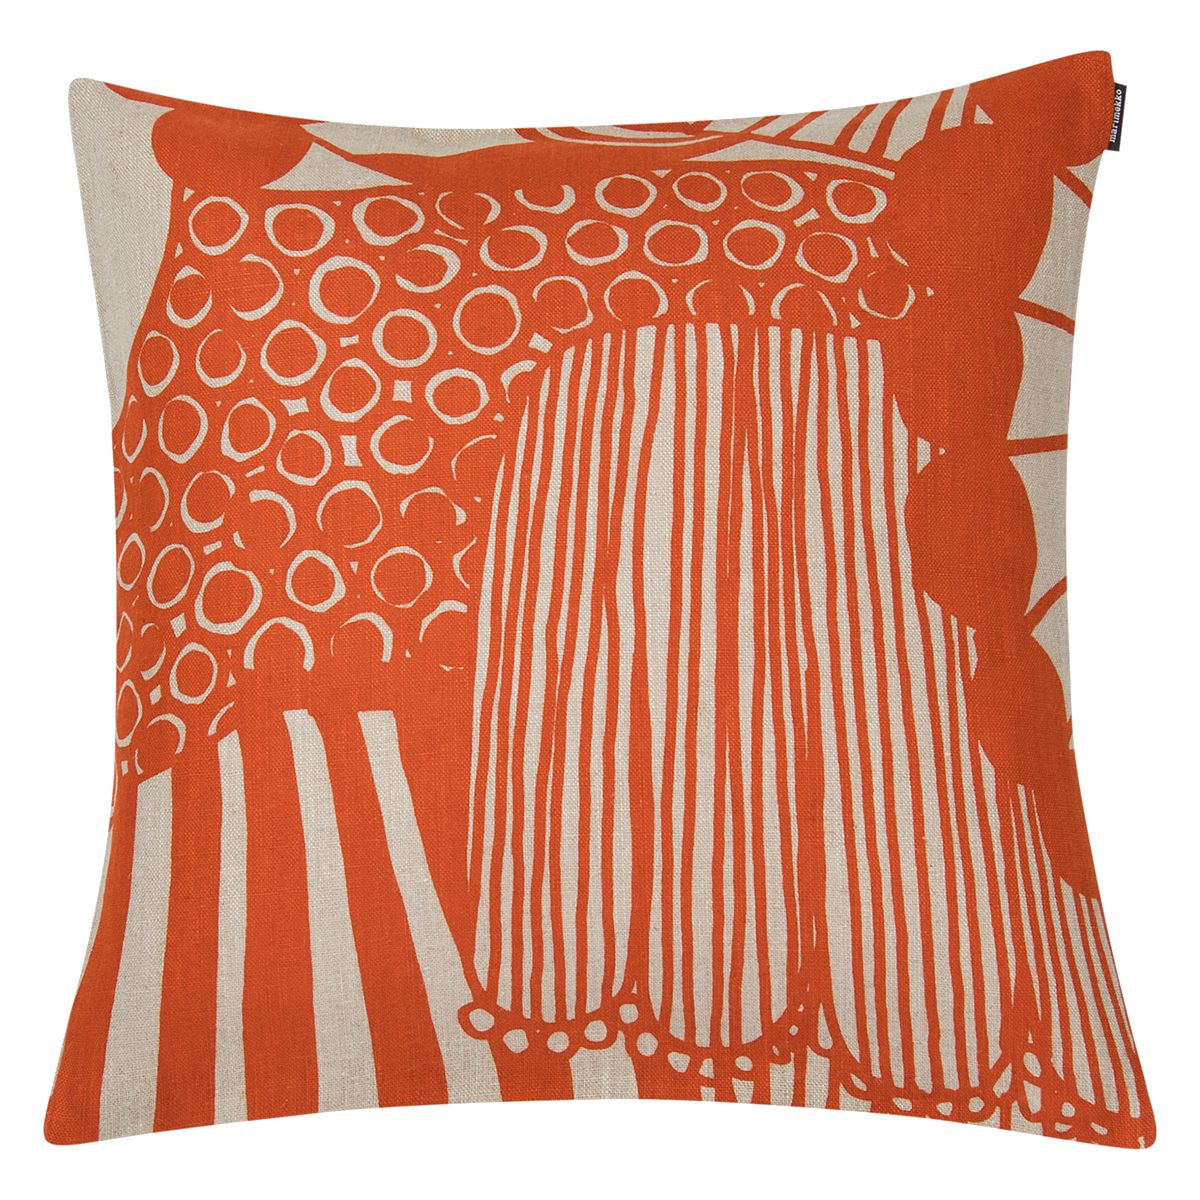 Cool Marimekko Siirtolapuutarha Beige Orange Small Throw Pillow Inzonedesignstudio Interior Chair Design Inzonedesignstudiocom